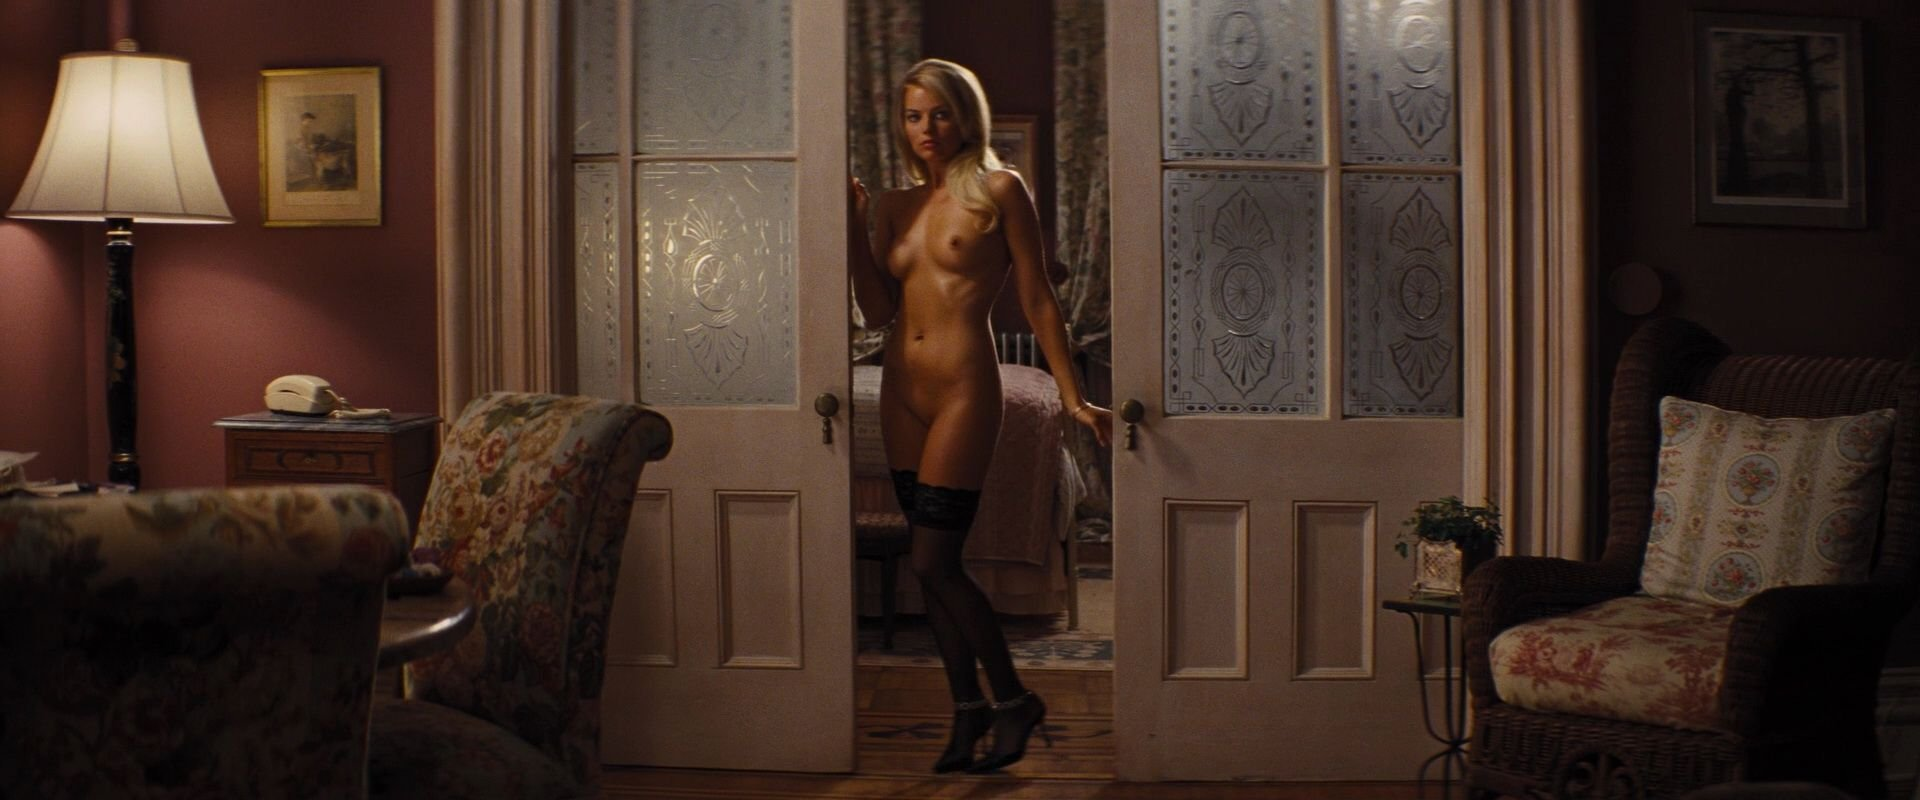 Nude&boob press in english horror movies pics pron images